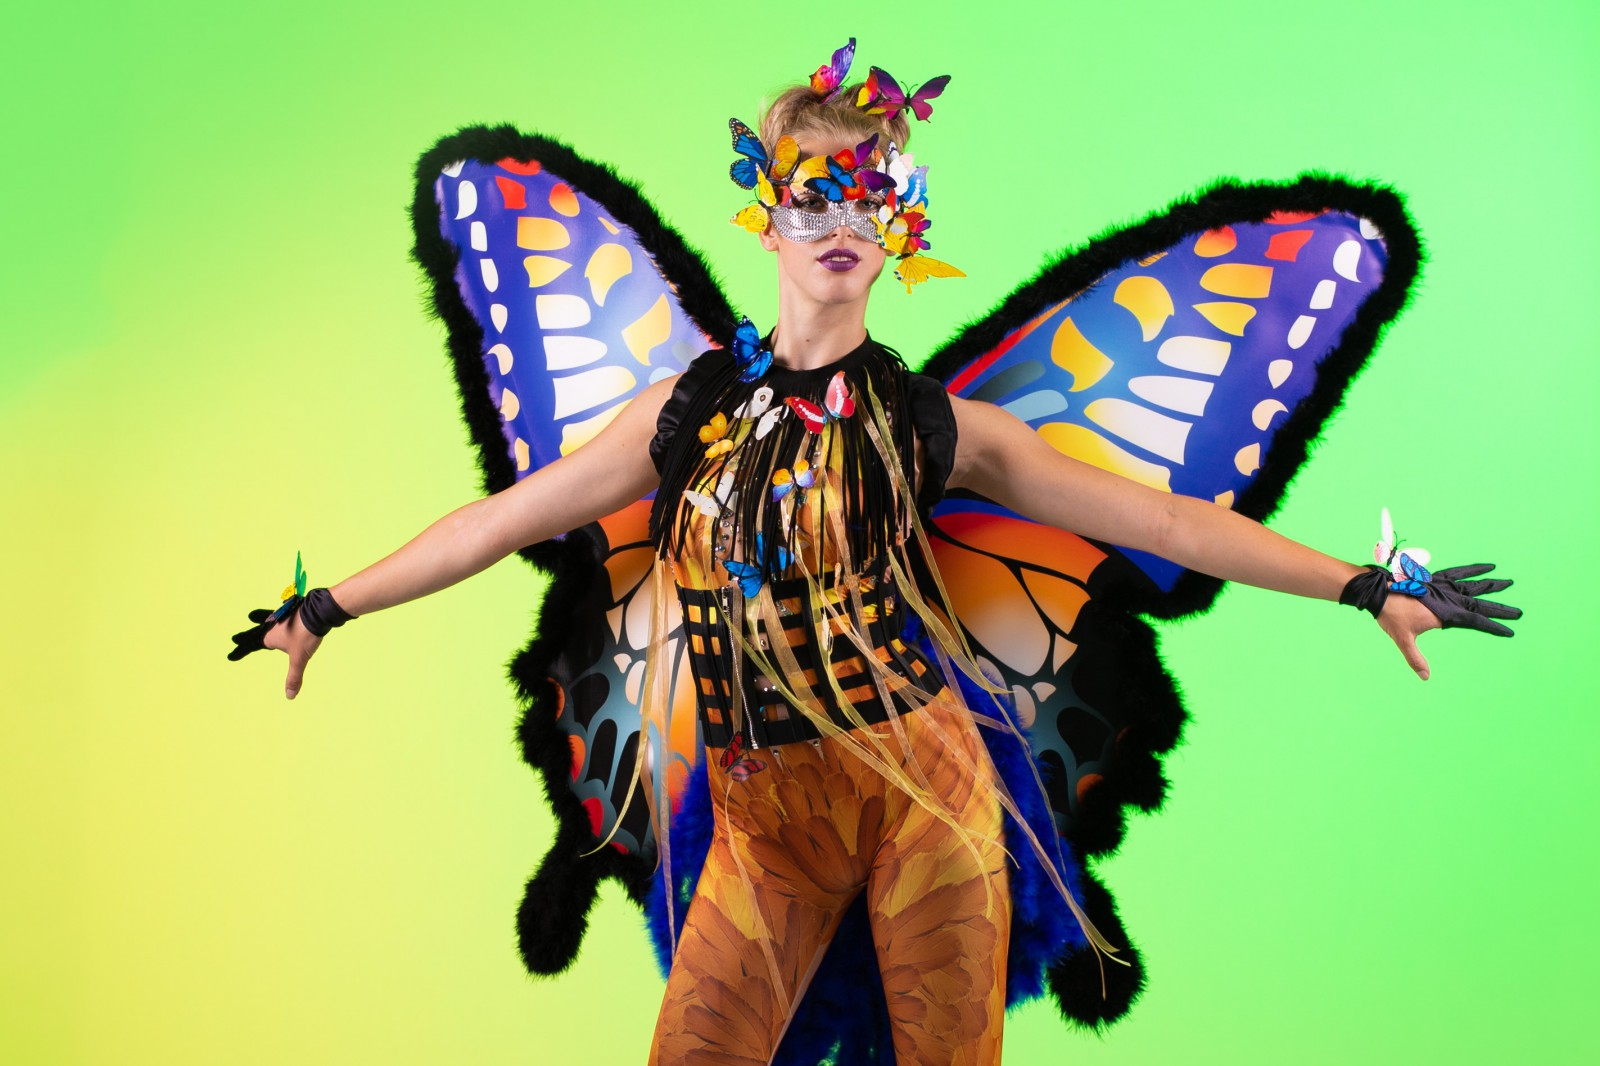 Vlinderdame, Zomerse Feesten, Summer Events, Fantasy Entertainment, Themadame, Promotieteam, Beautiful Butterfly, Freestyle Danseres, Dance Act.